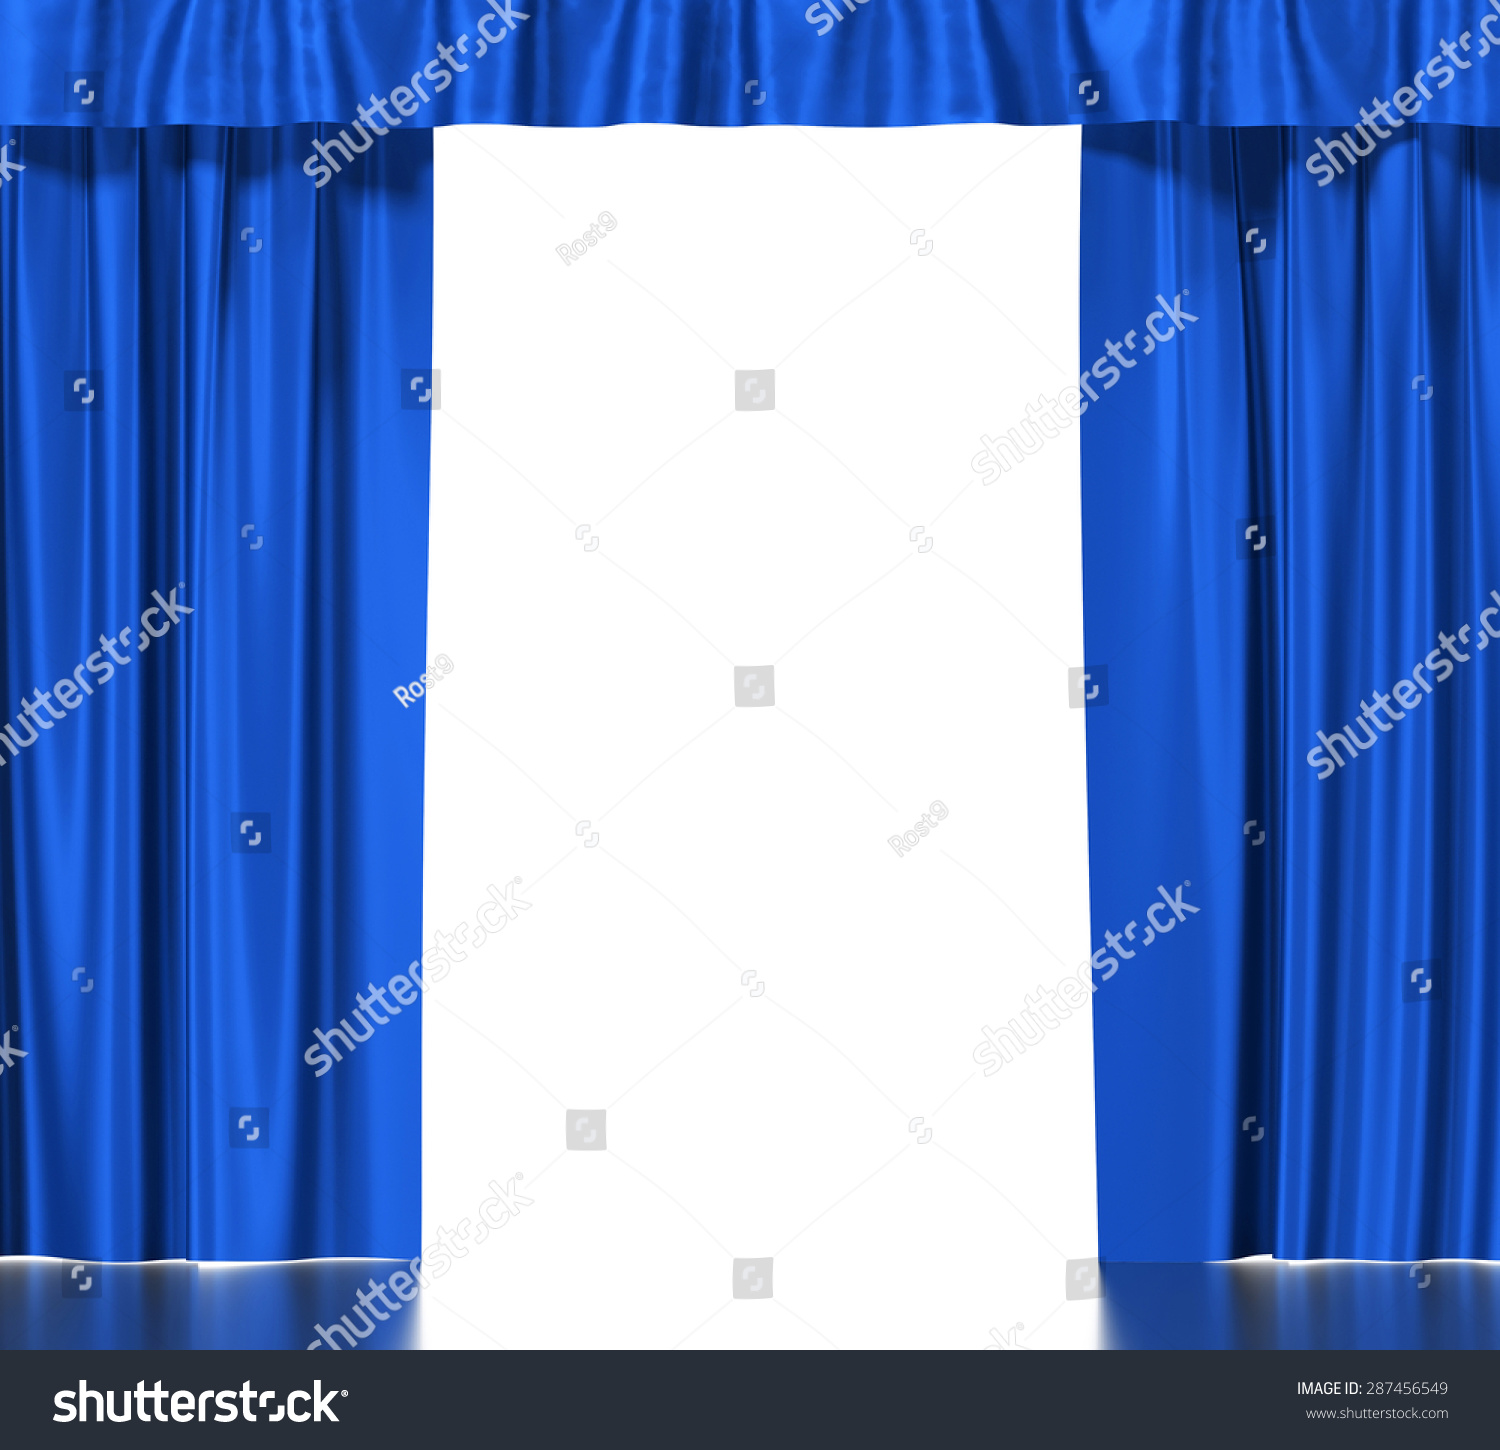 collection silk ideas faux pair beautiful awesome of curtain albergo curtains designs eyelet taffeta teal venetian